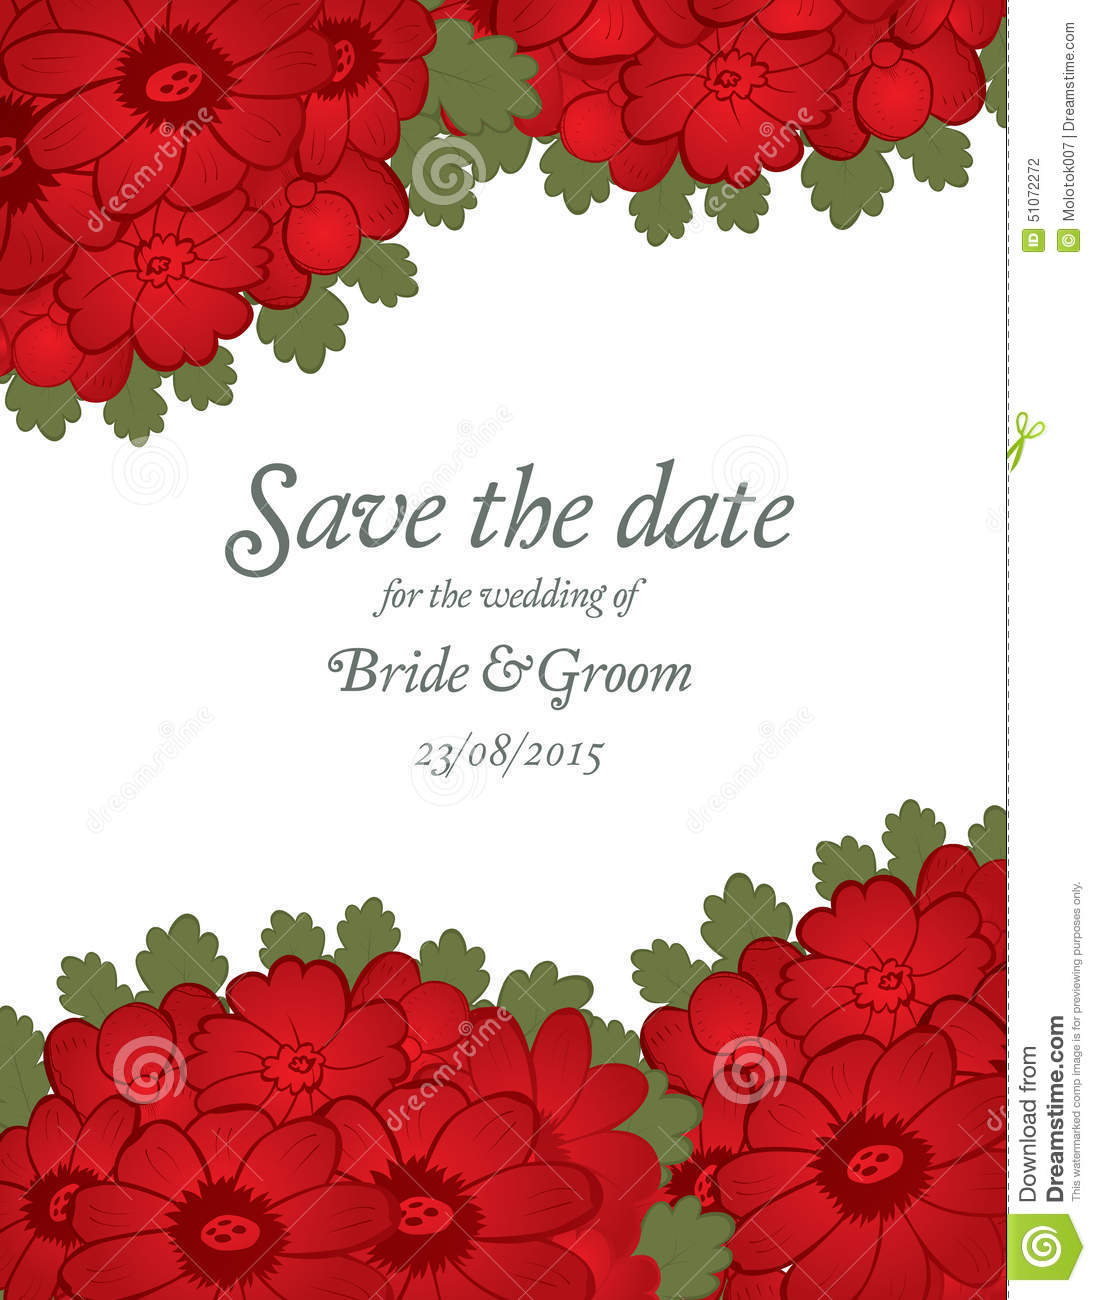 Save The Date Wedding Invite Card Template With Red Flowers Stock ...